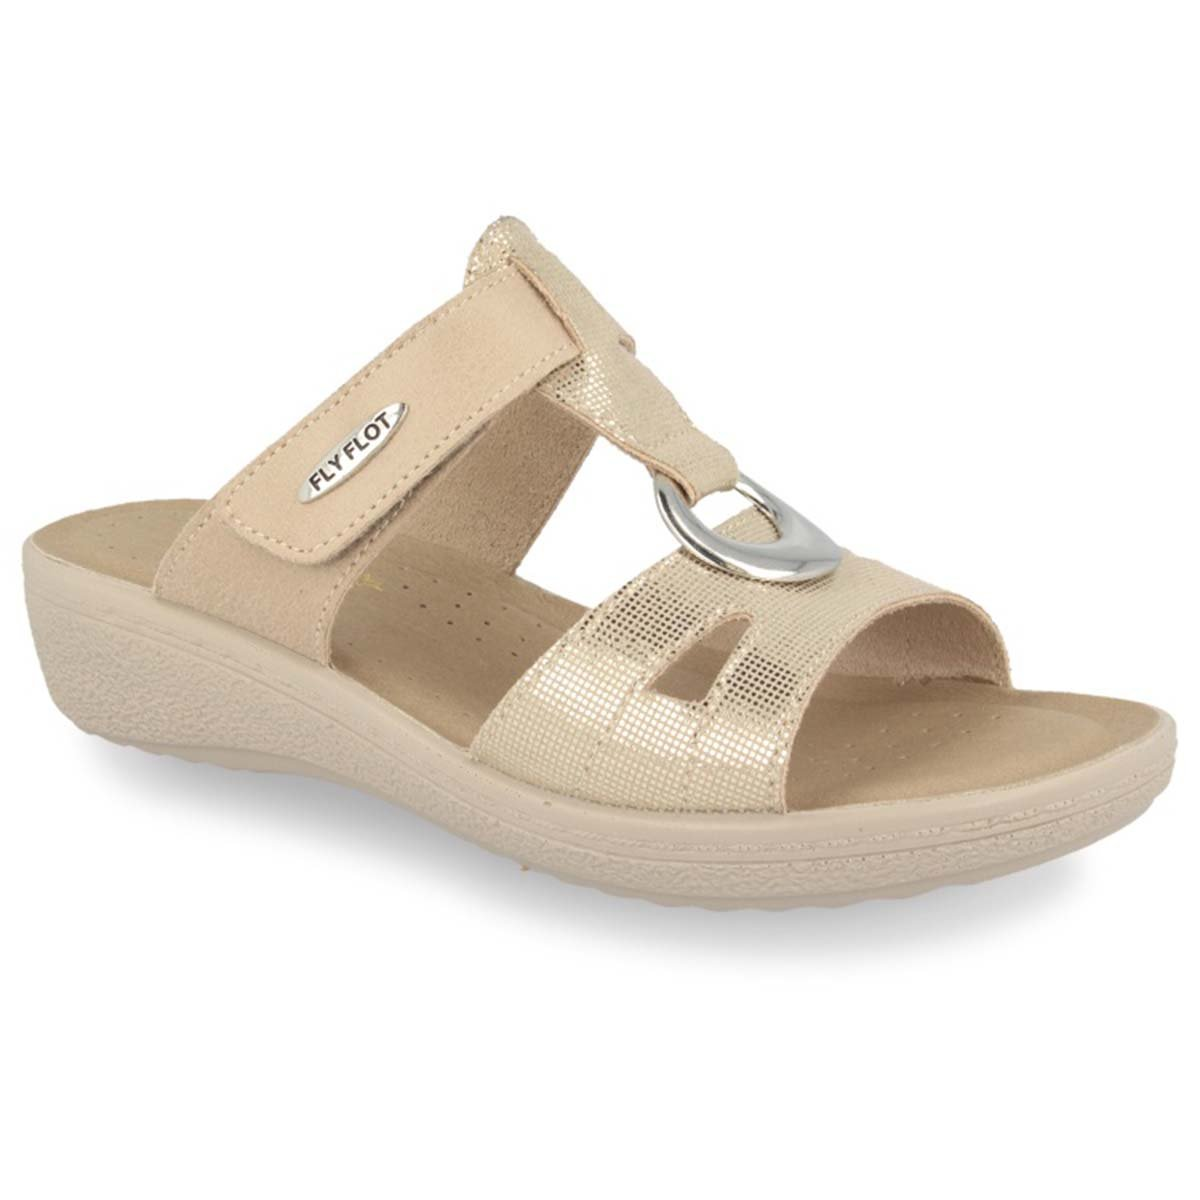 See photos Cloth Woman Slipper Beige (55B47IB)